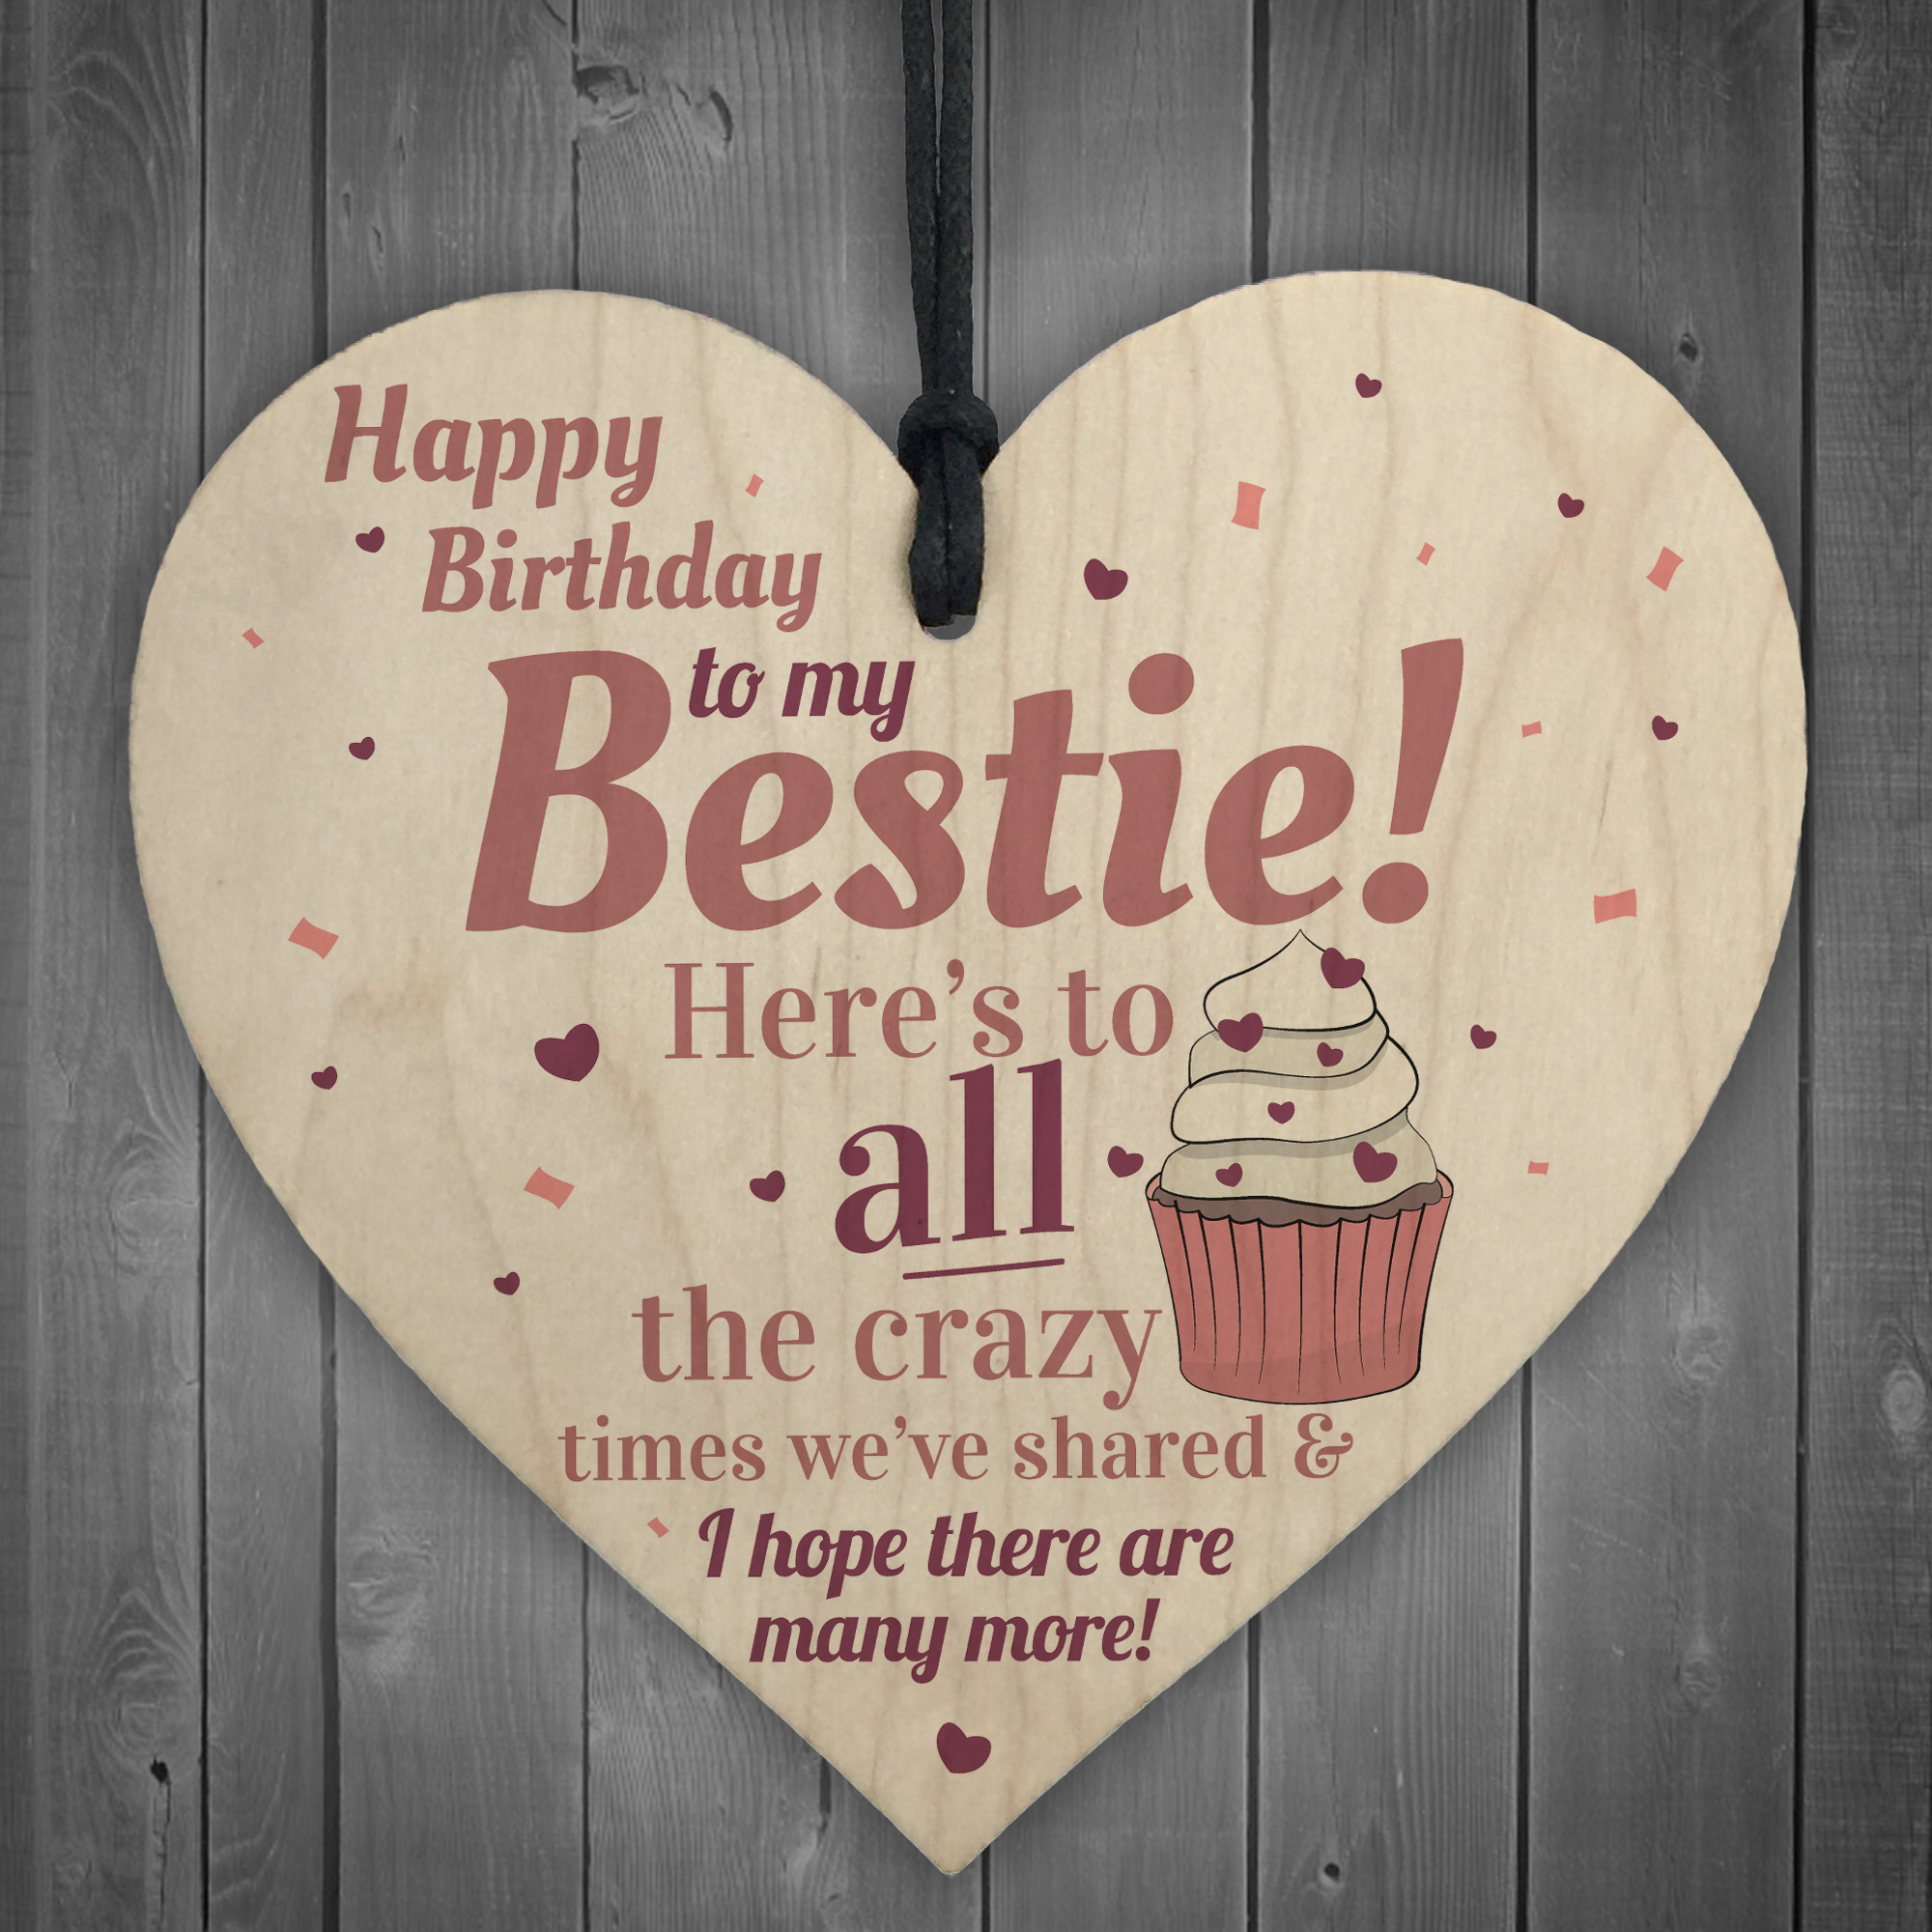 Details About Happy Birthday Bestie Funny Hanging Wooden Heart Best Friend Thank You Card Gift